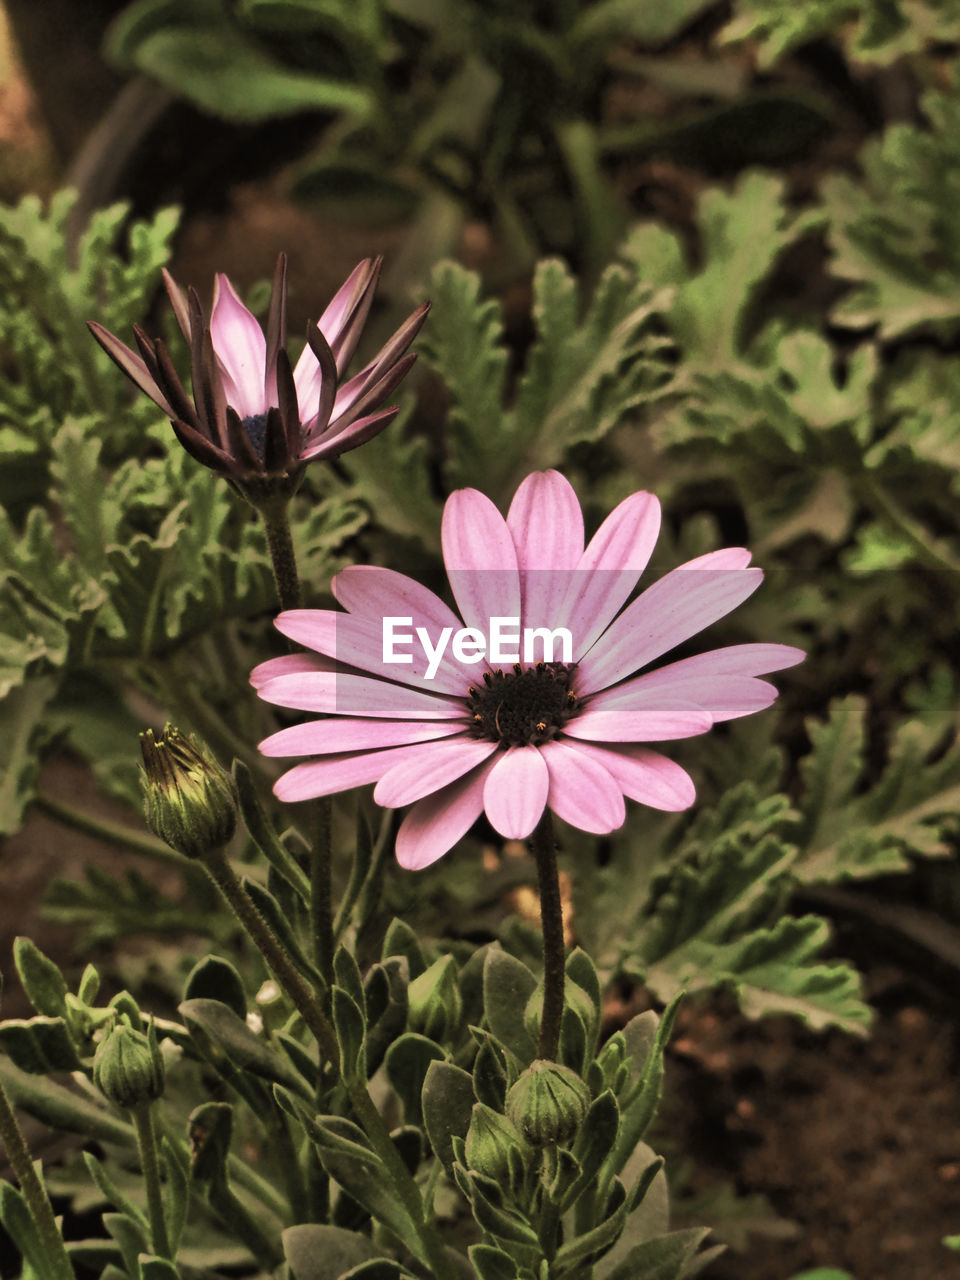 flower, growth, plant, nature, petal, fragility, flower head, beauty in nature, blooming, green color, freshness, day, outdoors, no people, leaf, close-up, osteospermum